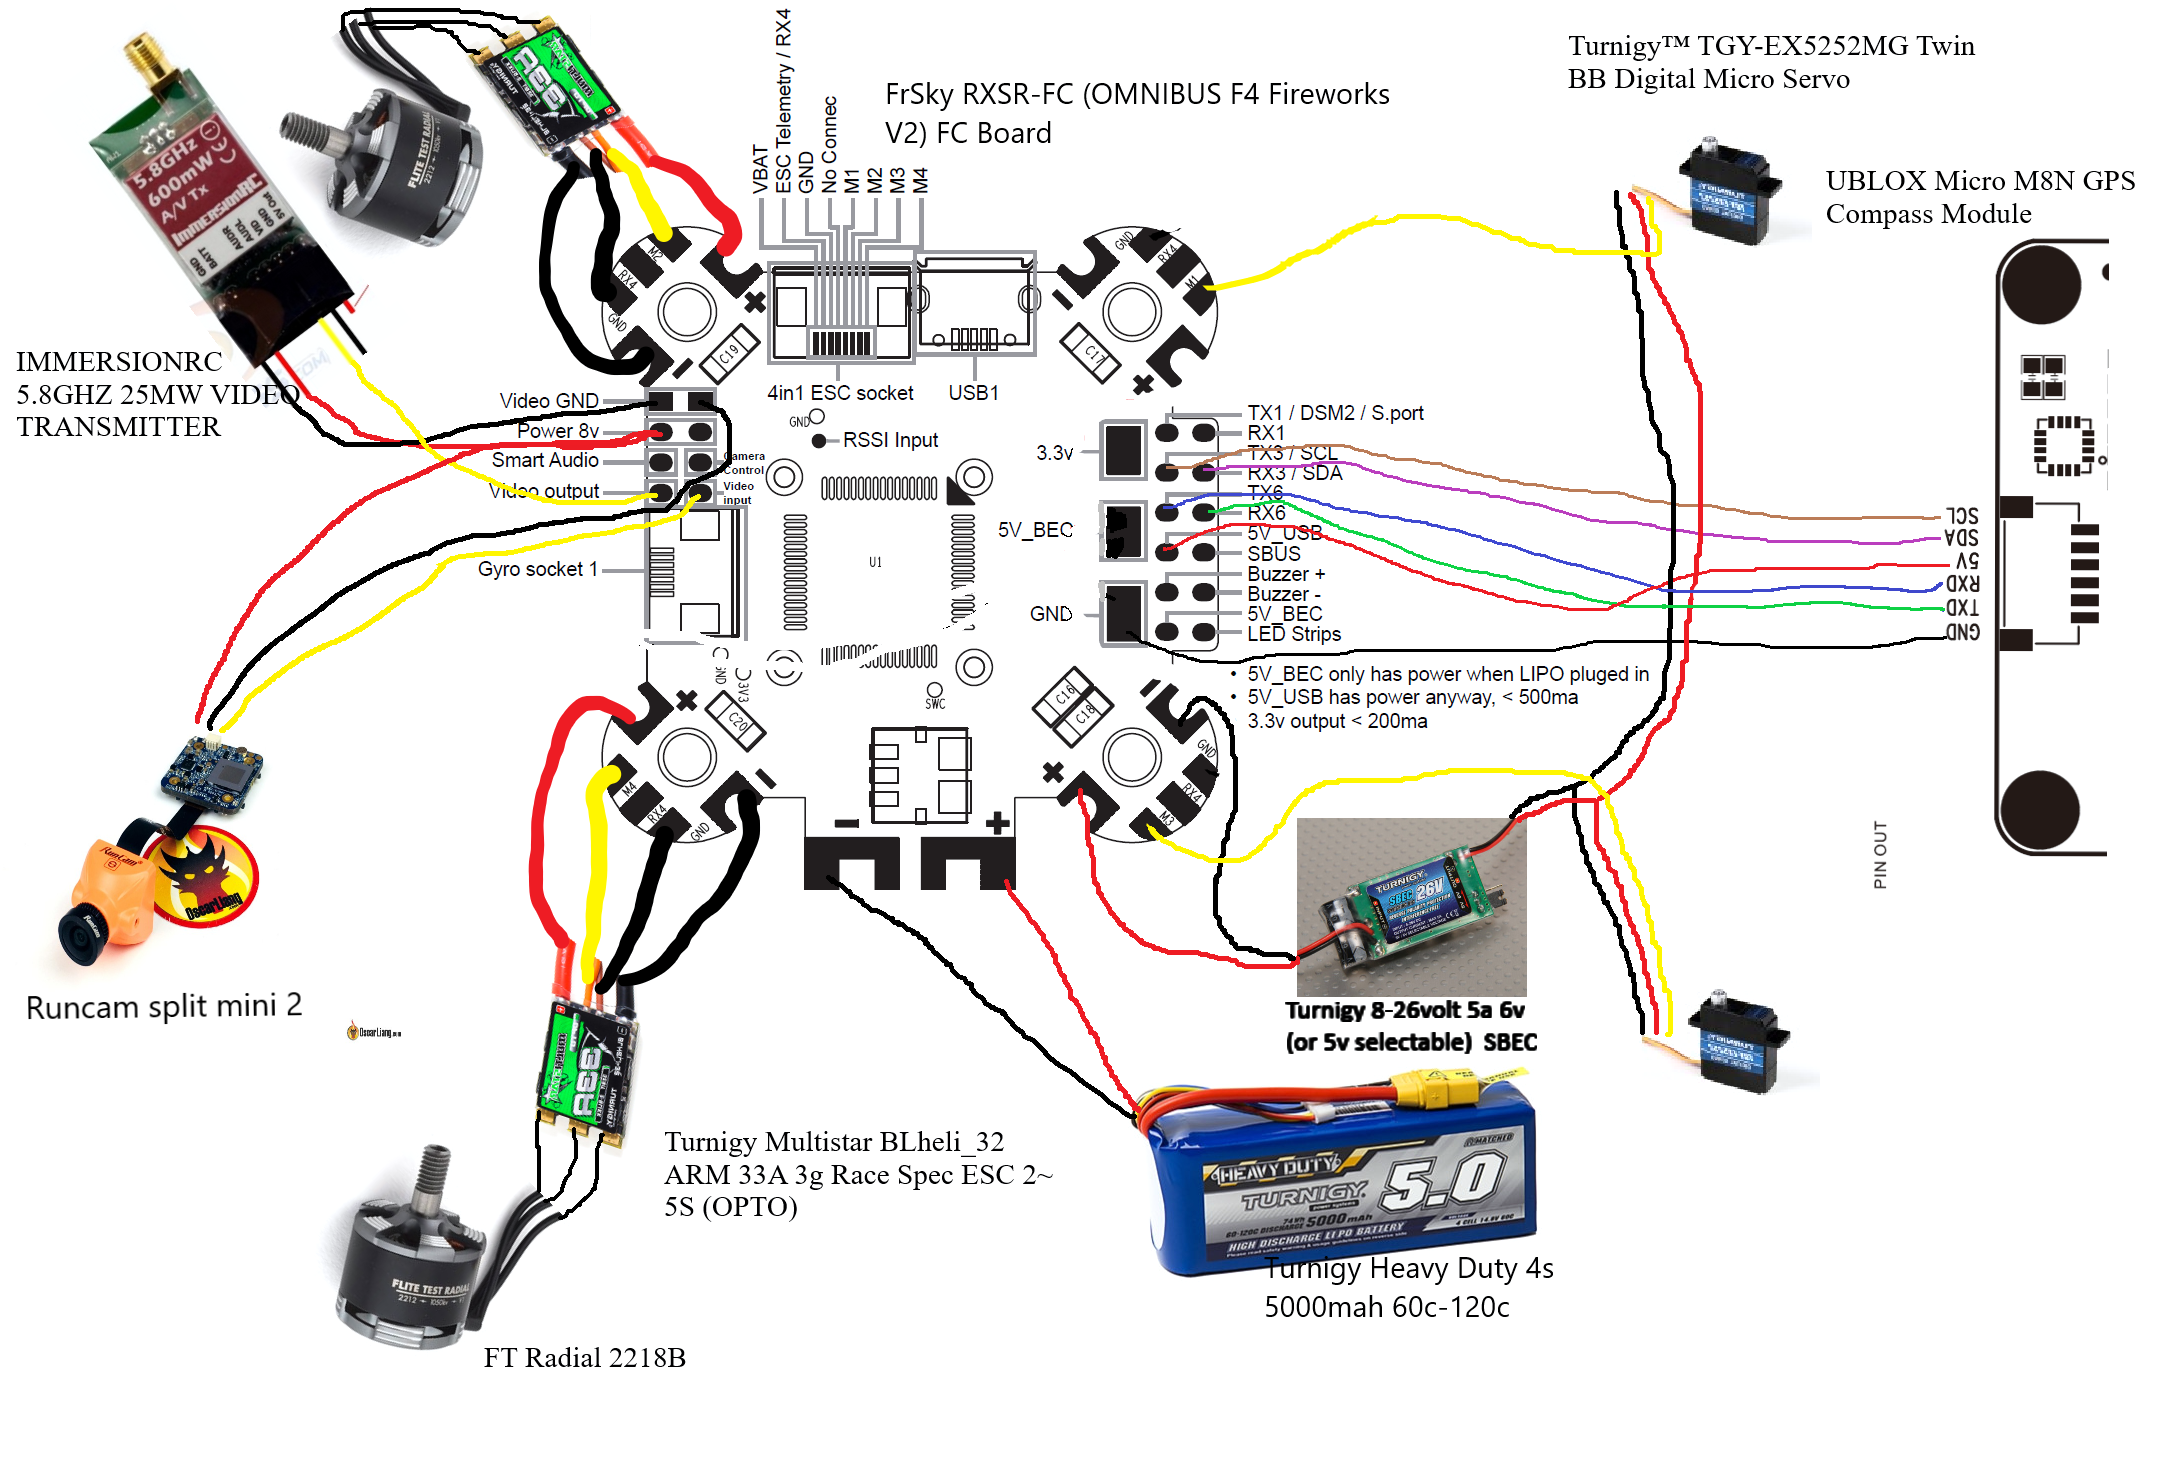 Fpv Gps Guided Kraken Build  Wiring Help For Rxsr